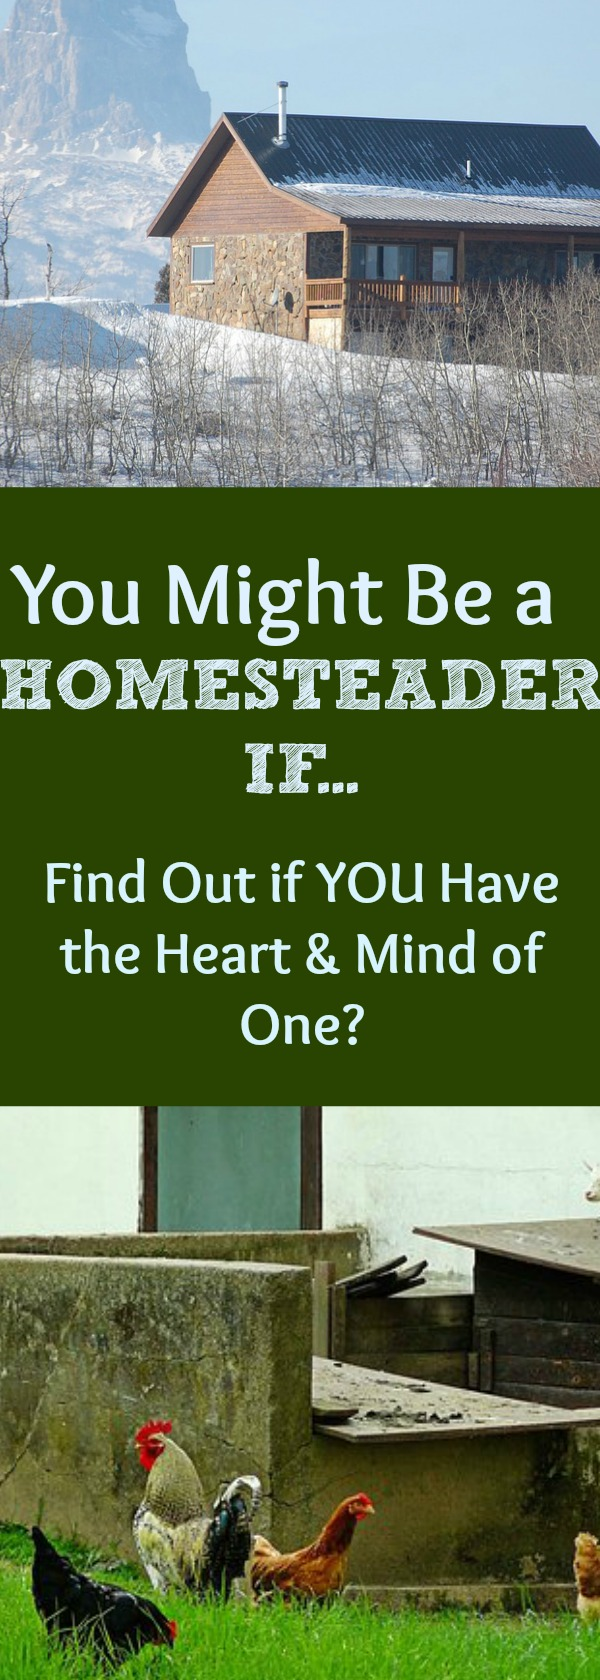 Are YOU a homesteader? Doesn't matter where you live! A homesteader is a person with a special mind and heart. See if you have what it takes to be a homesteader and if YOU think like a homesteader!